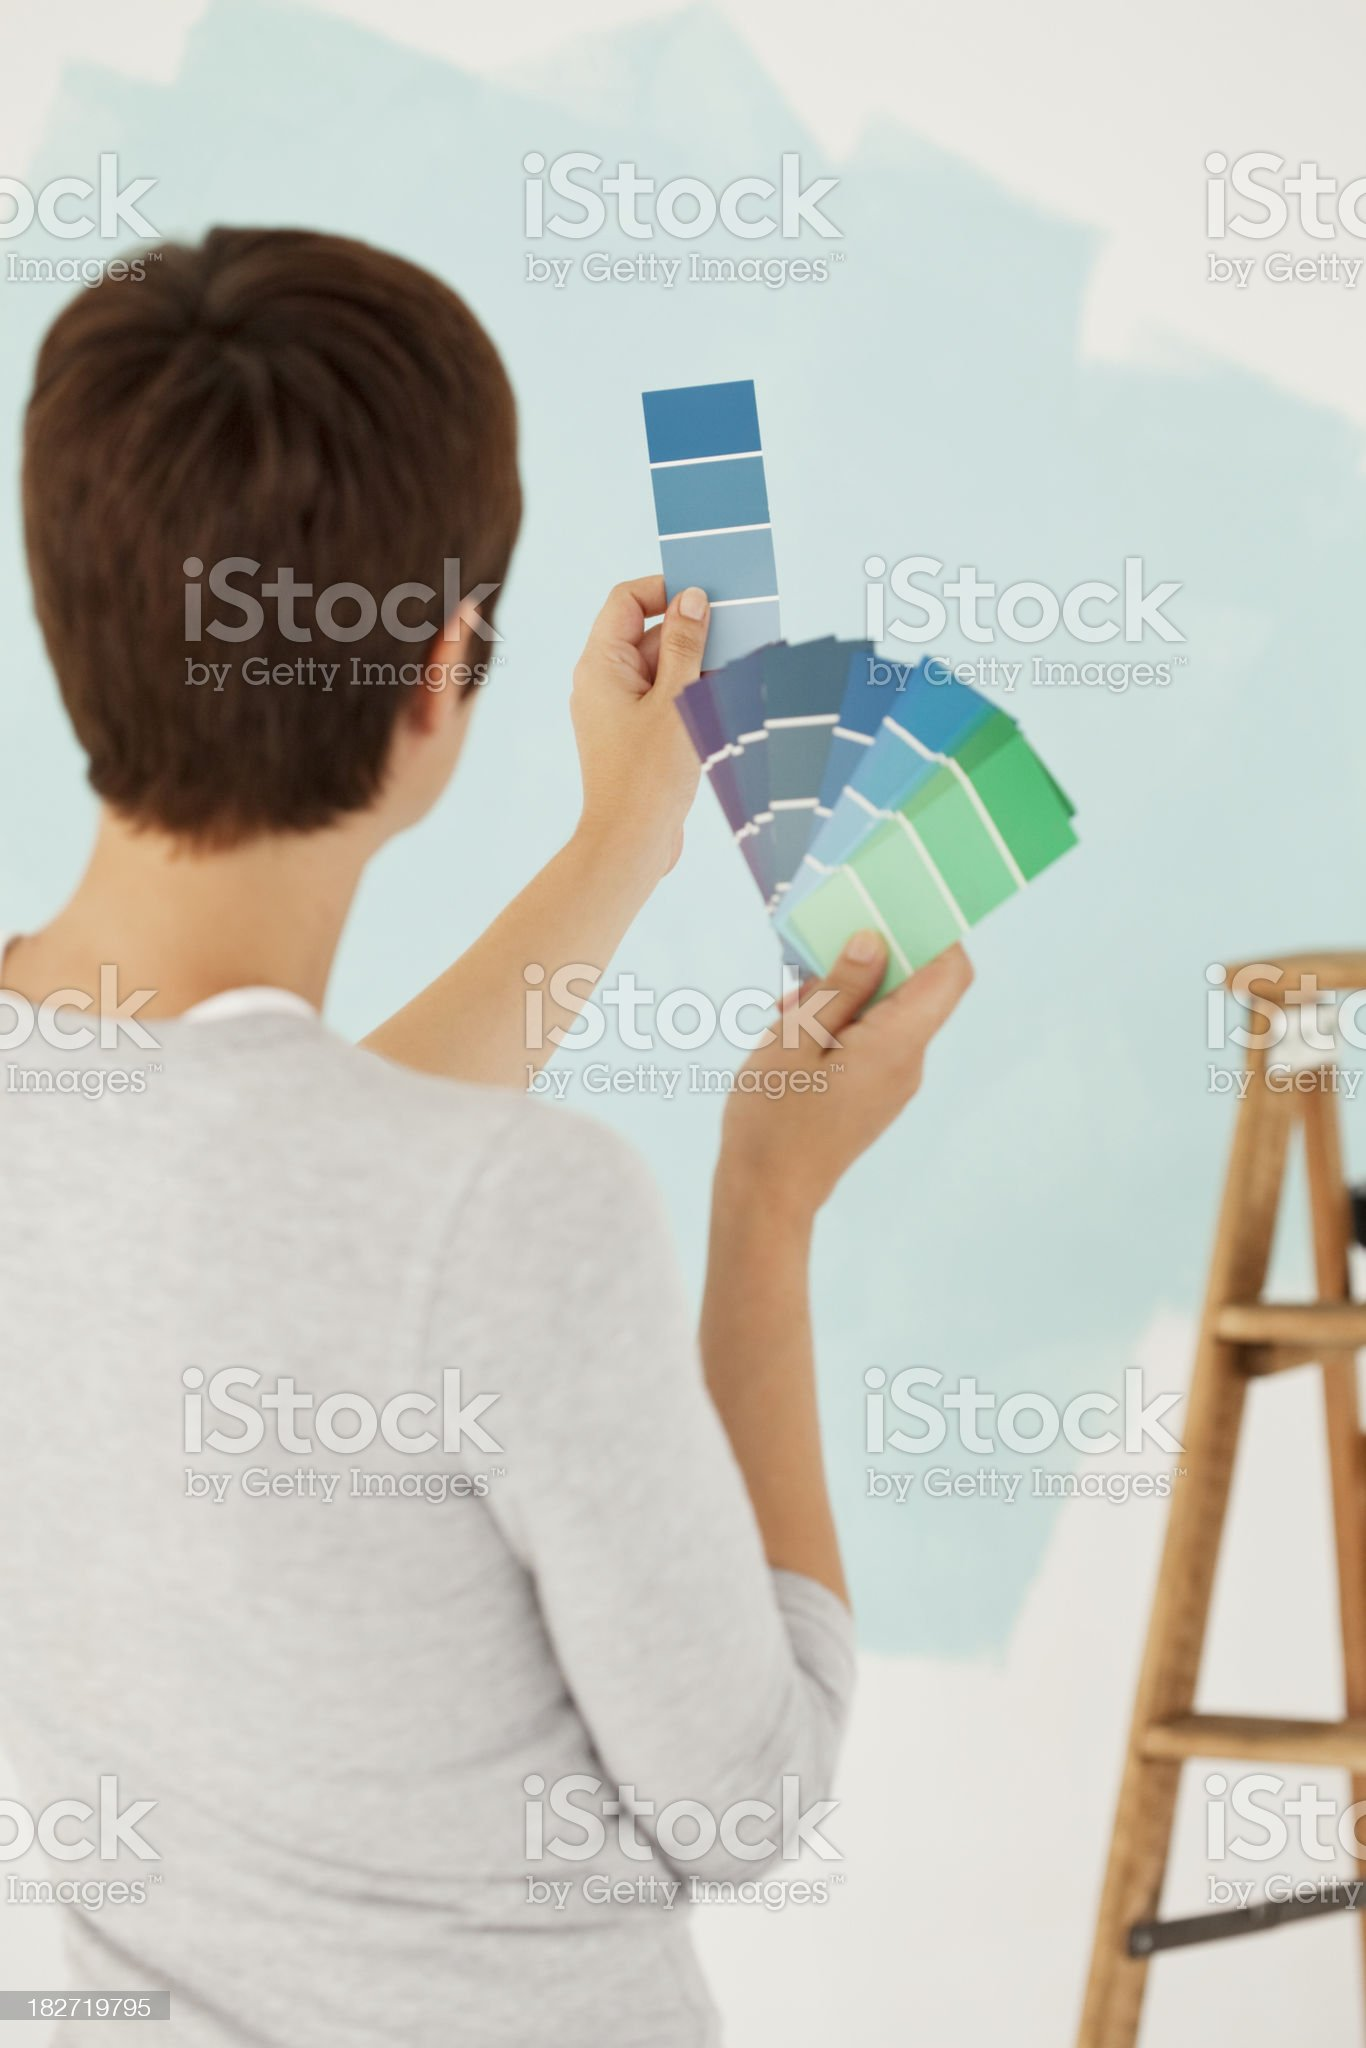 Young Woman Standing Holding Paint Samples royalty-free stock photo